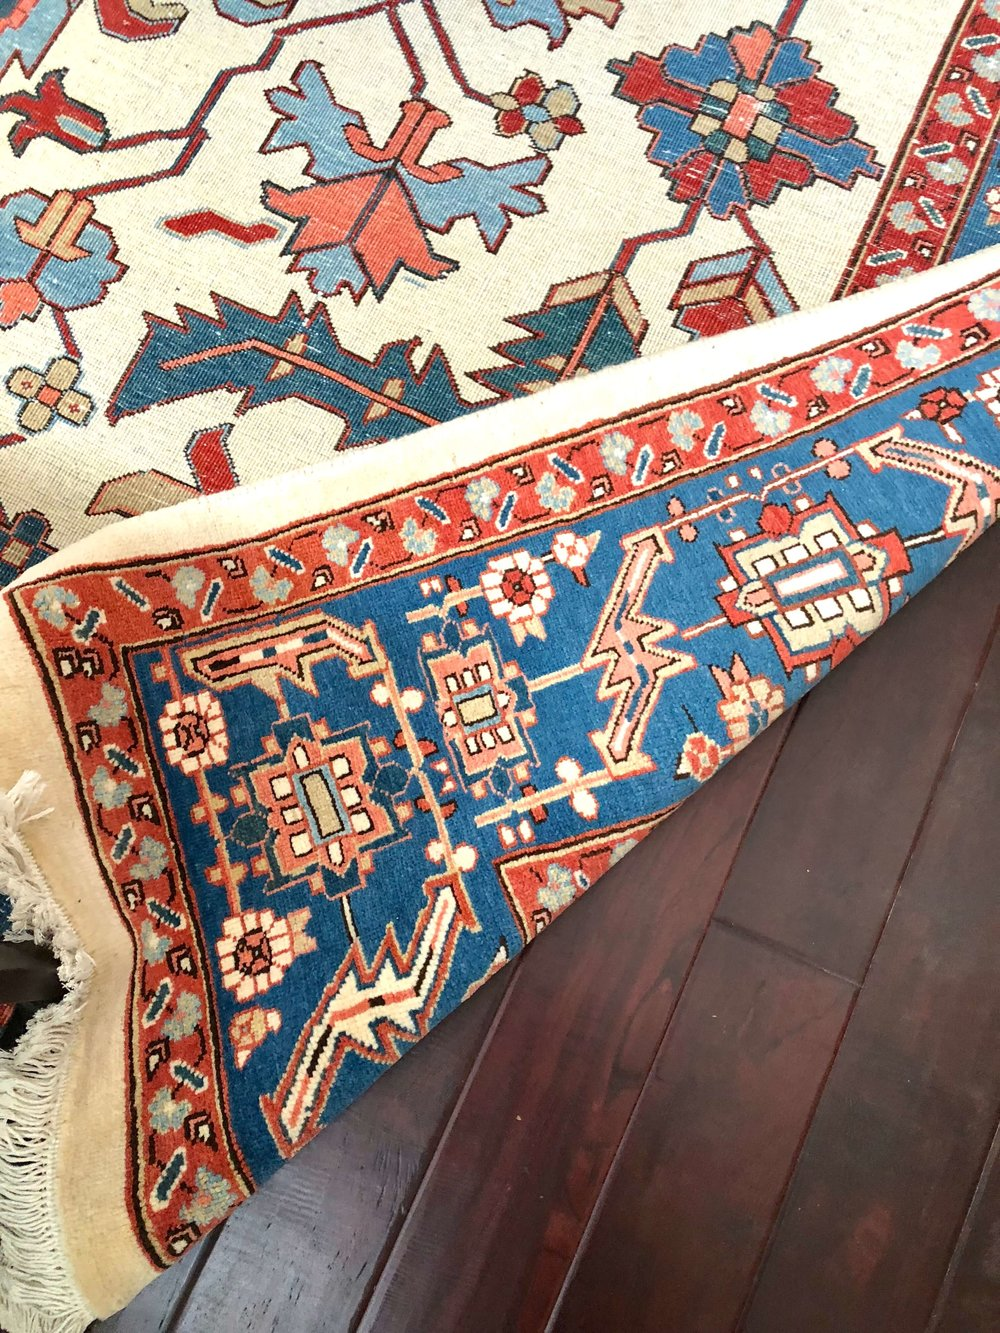 DECORATING TRICK to tone down brightly colored rugs | Corner has cut pile top exposed   #rugs #orientalrug